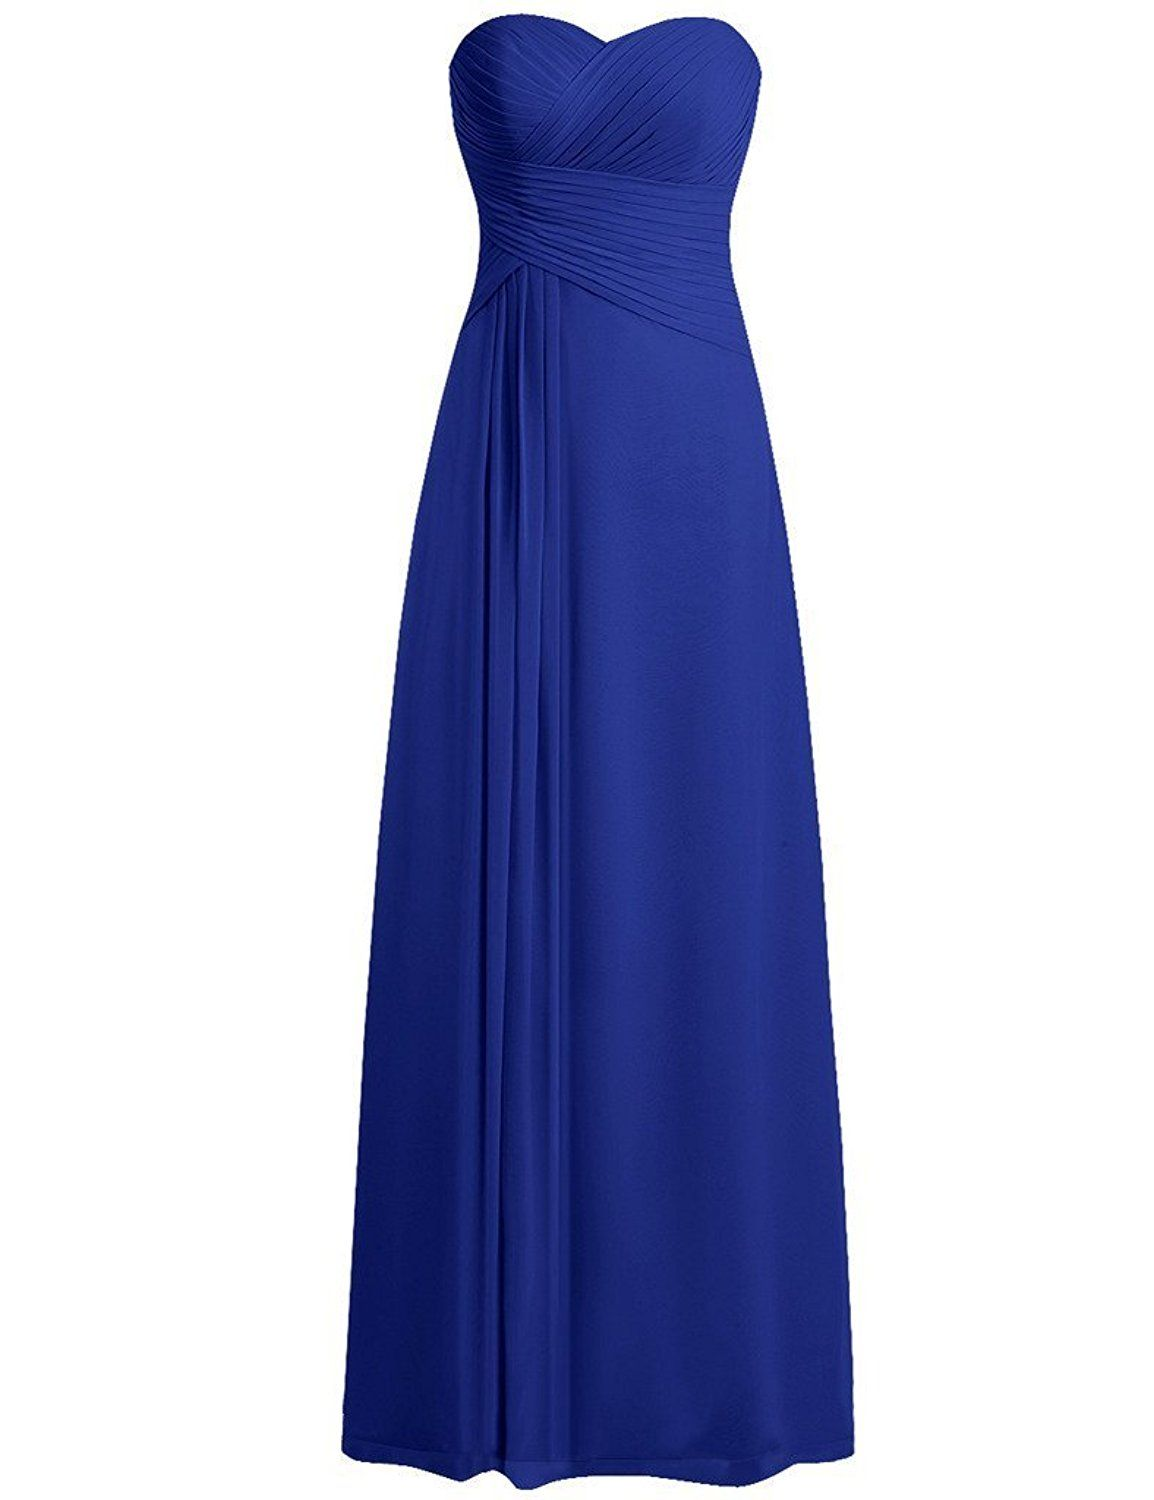 1231285ee8a JAEDEN Sweetheart Bridesmaid Dresses Chiffon Long Prom Evening Gown Pleat  -- Insider s special review you can t miss. Read more   Dresses